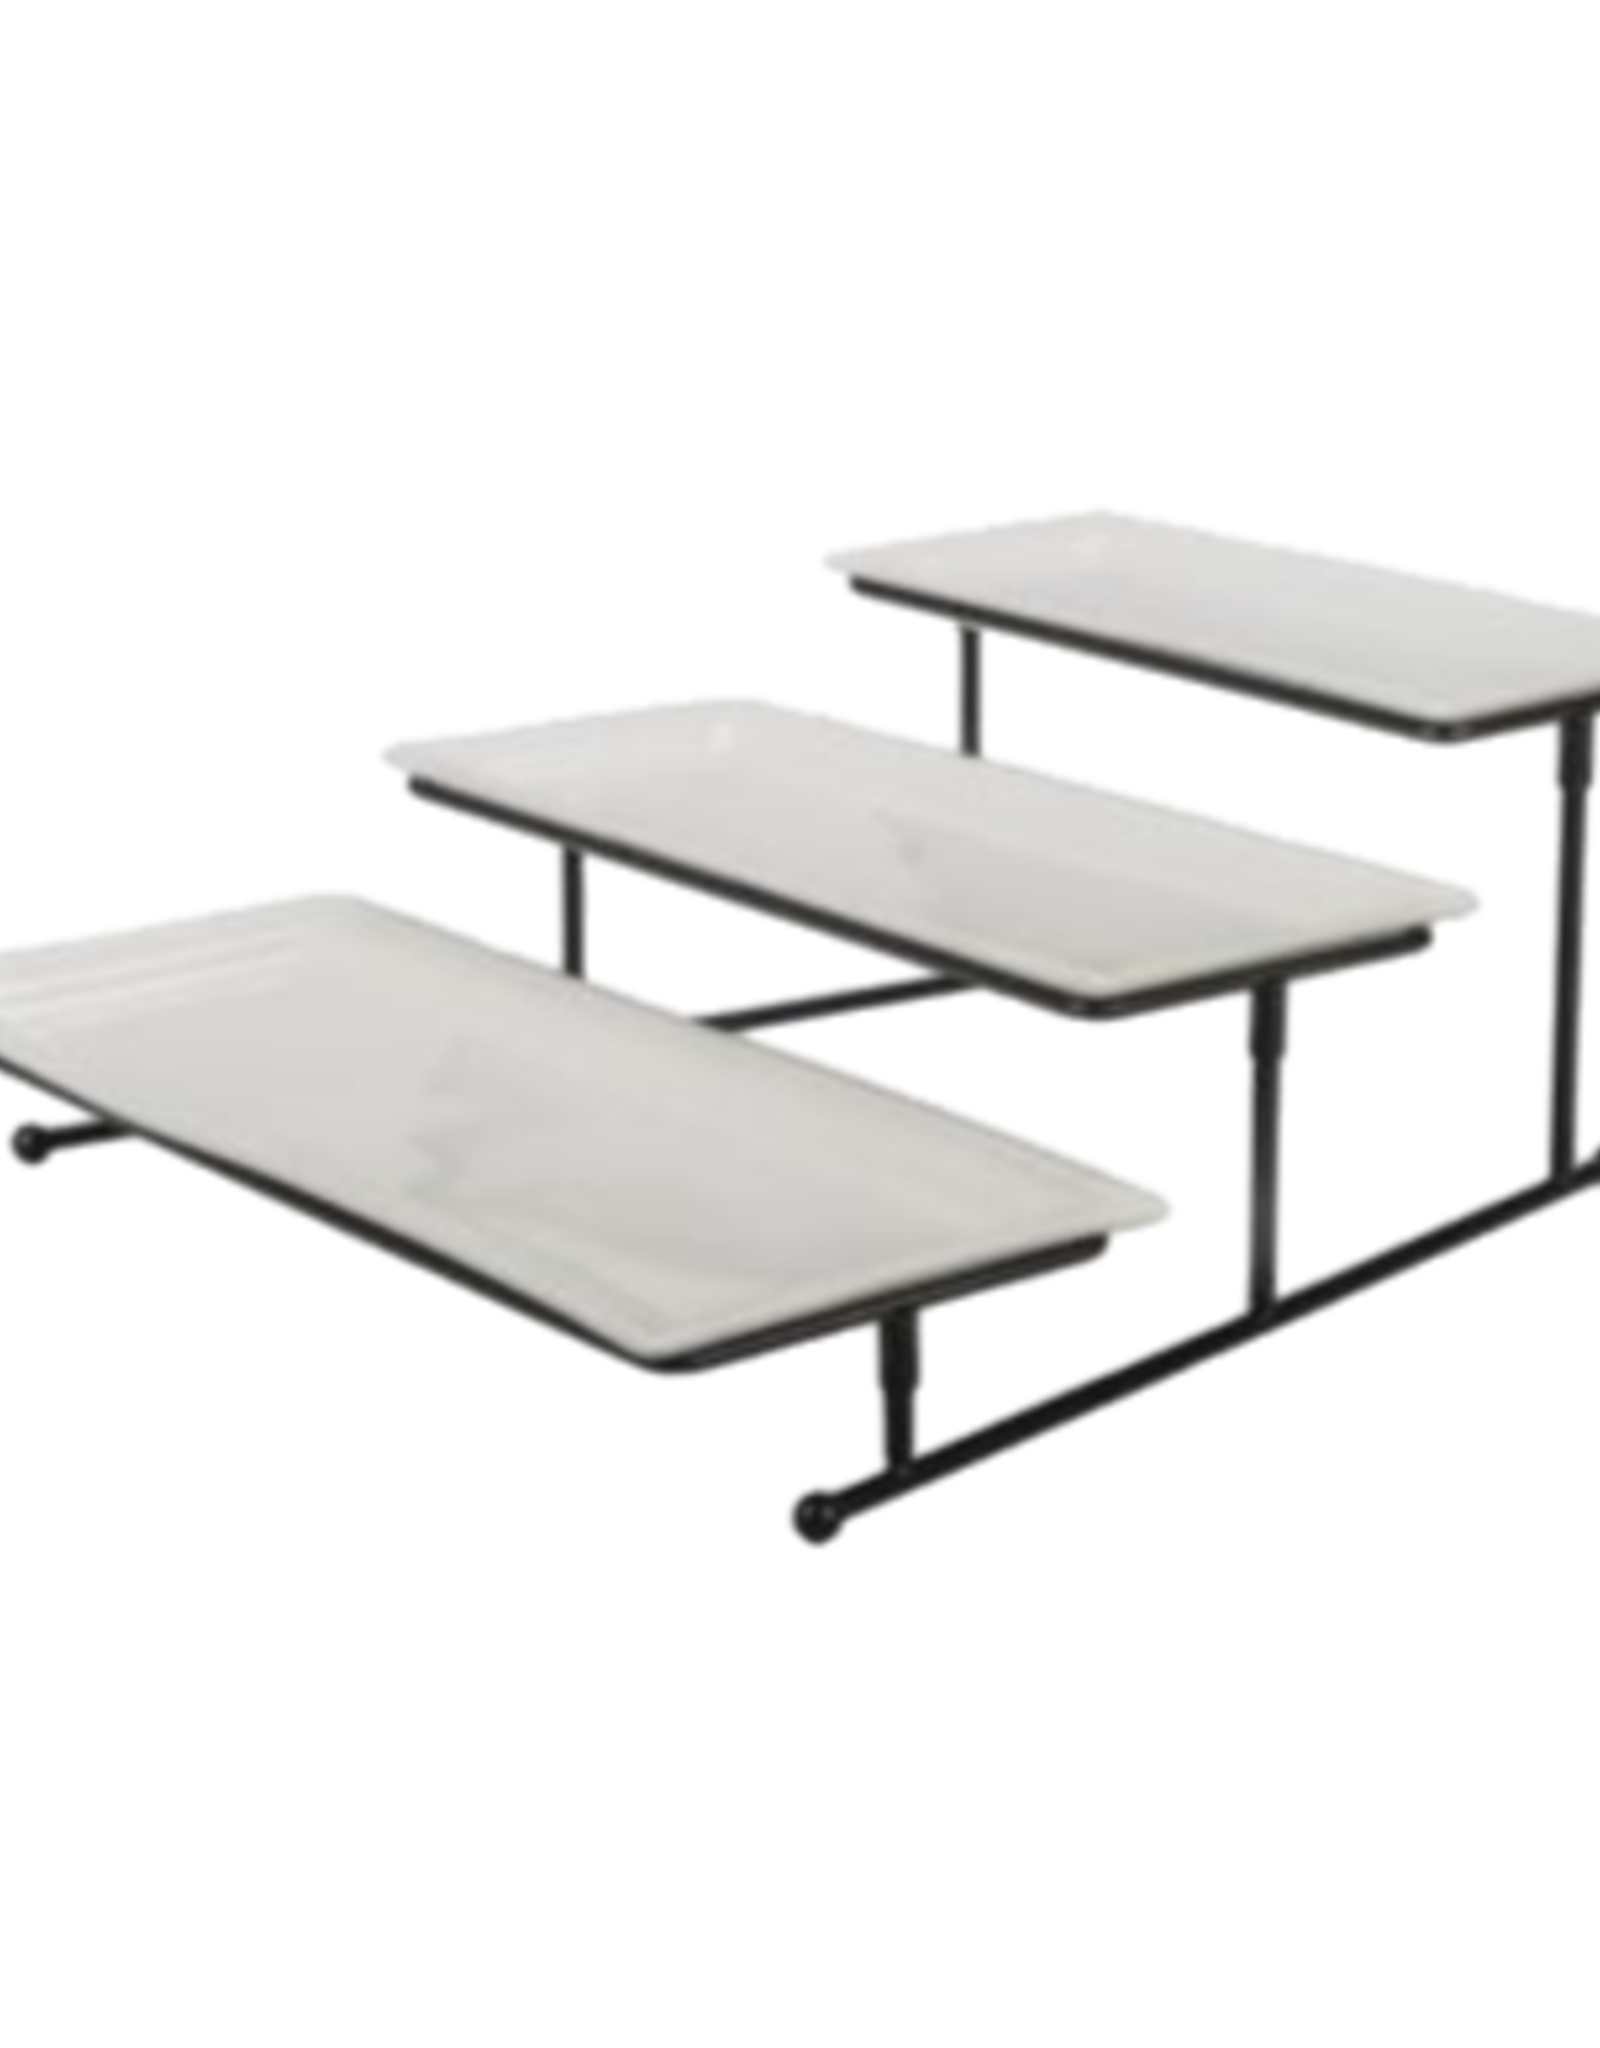 TRAY SET WITH STAND 3 TIERED RECTANGLE DISHES